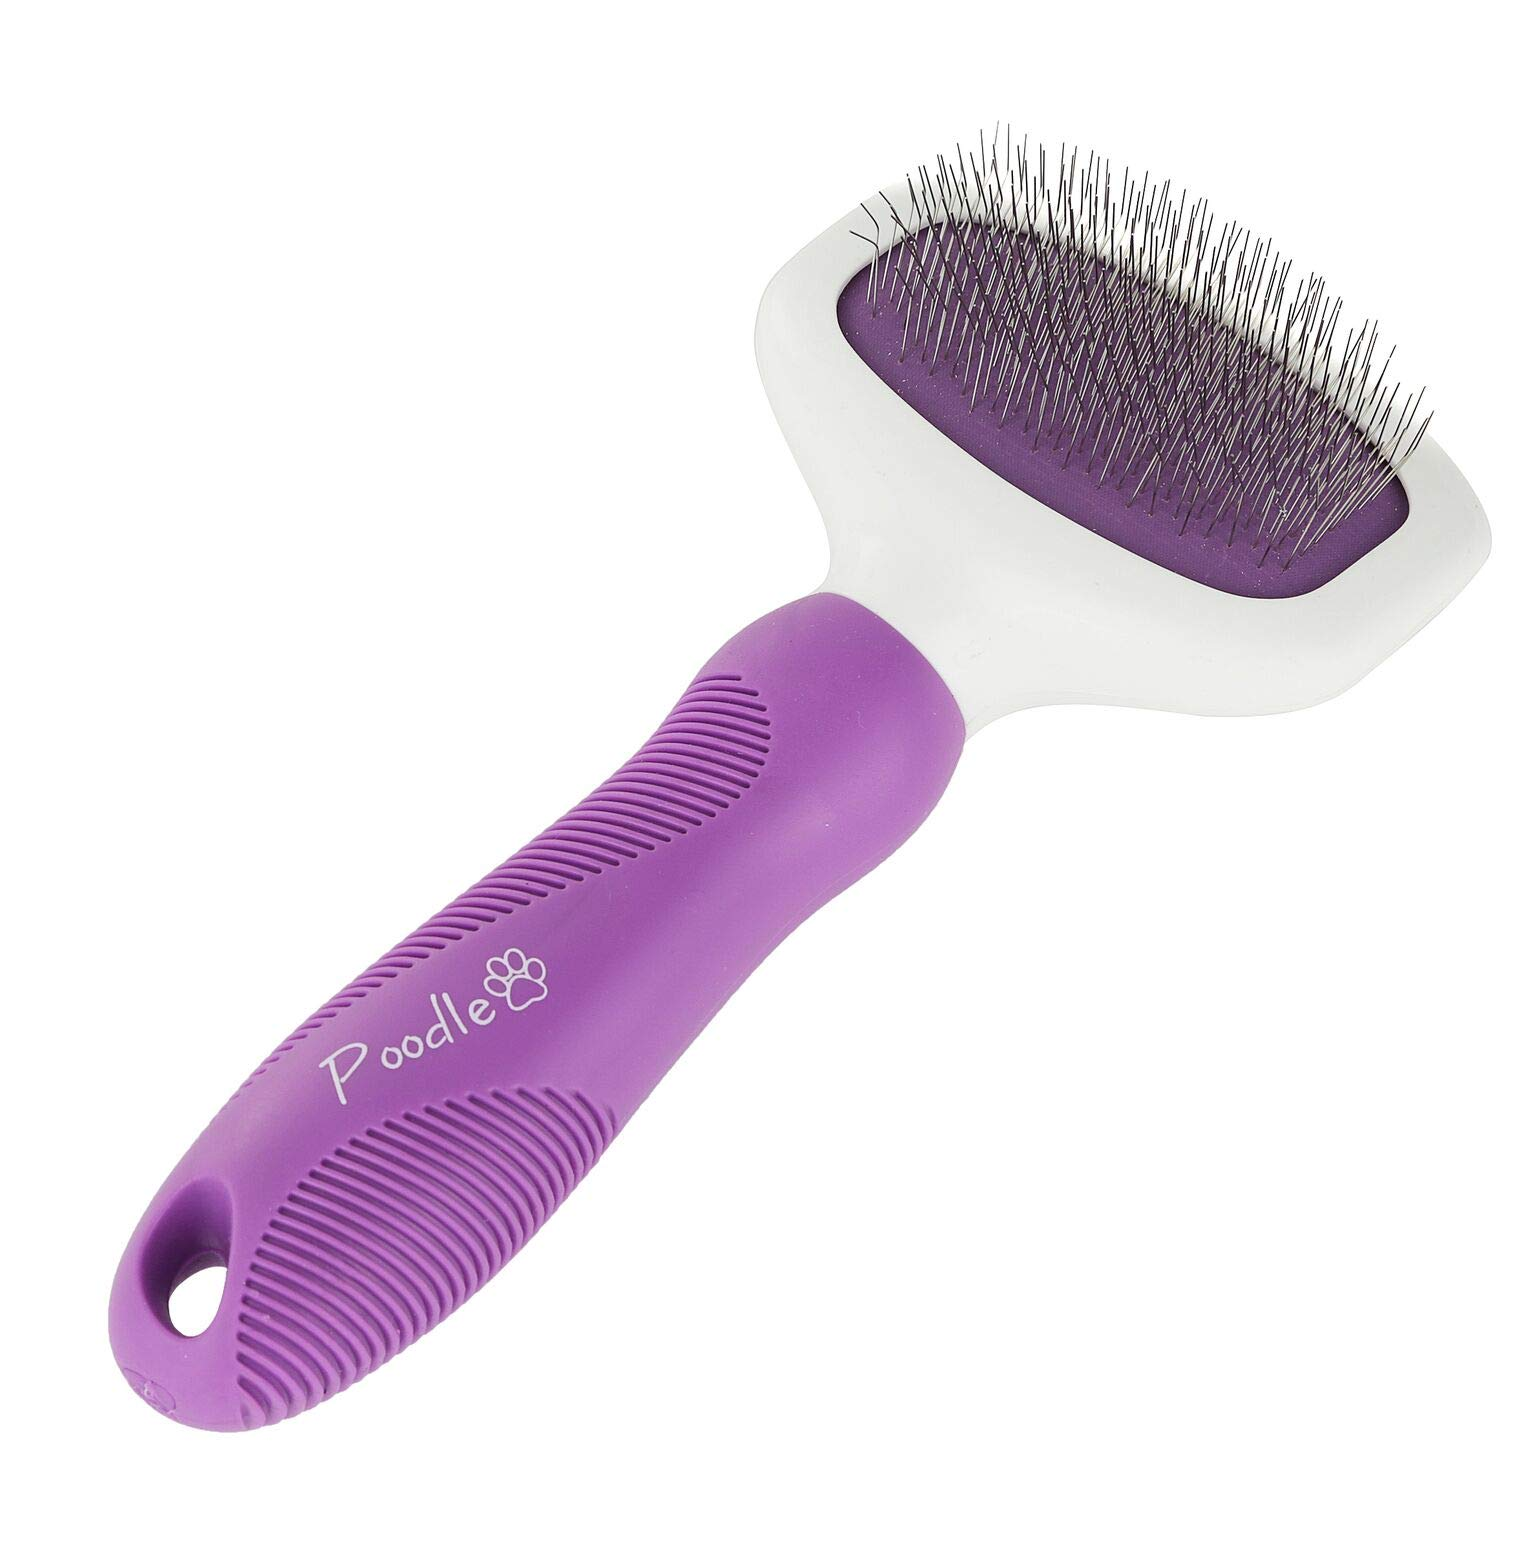 Poodle Pet Slicker Brush Small Large Dogs Pet Hair Remover Rotating Head | Effectively Effortlessly Removes Tangles, Mats Loose Hair Short Long Hair(Grooming Brush)